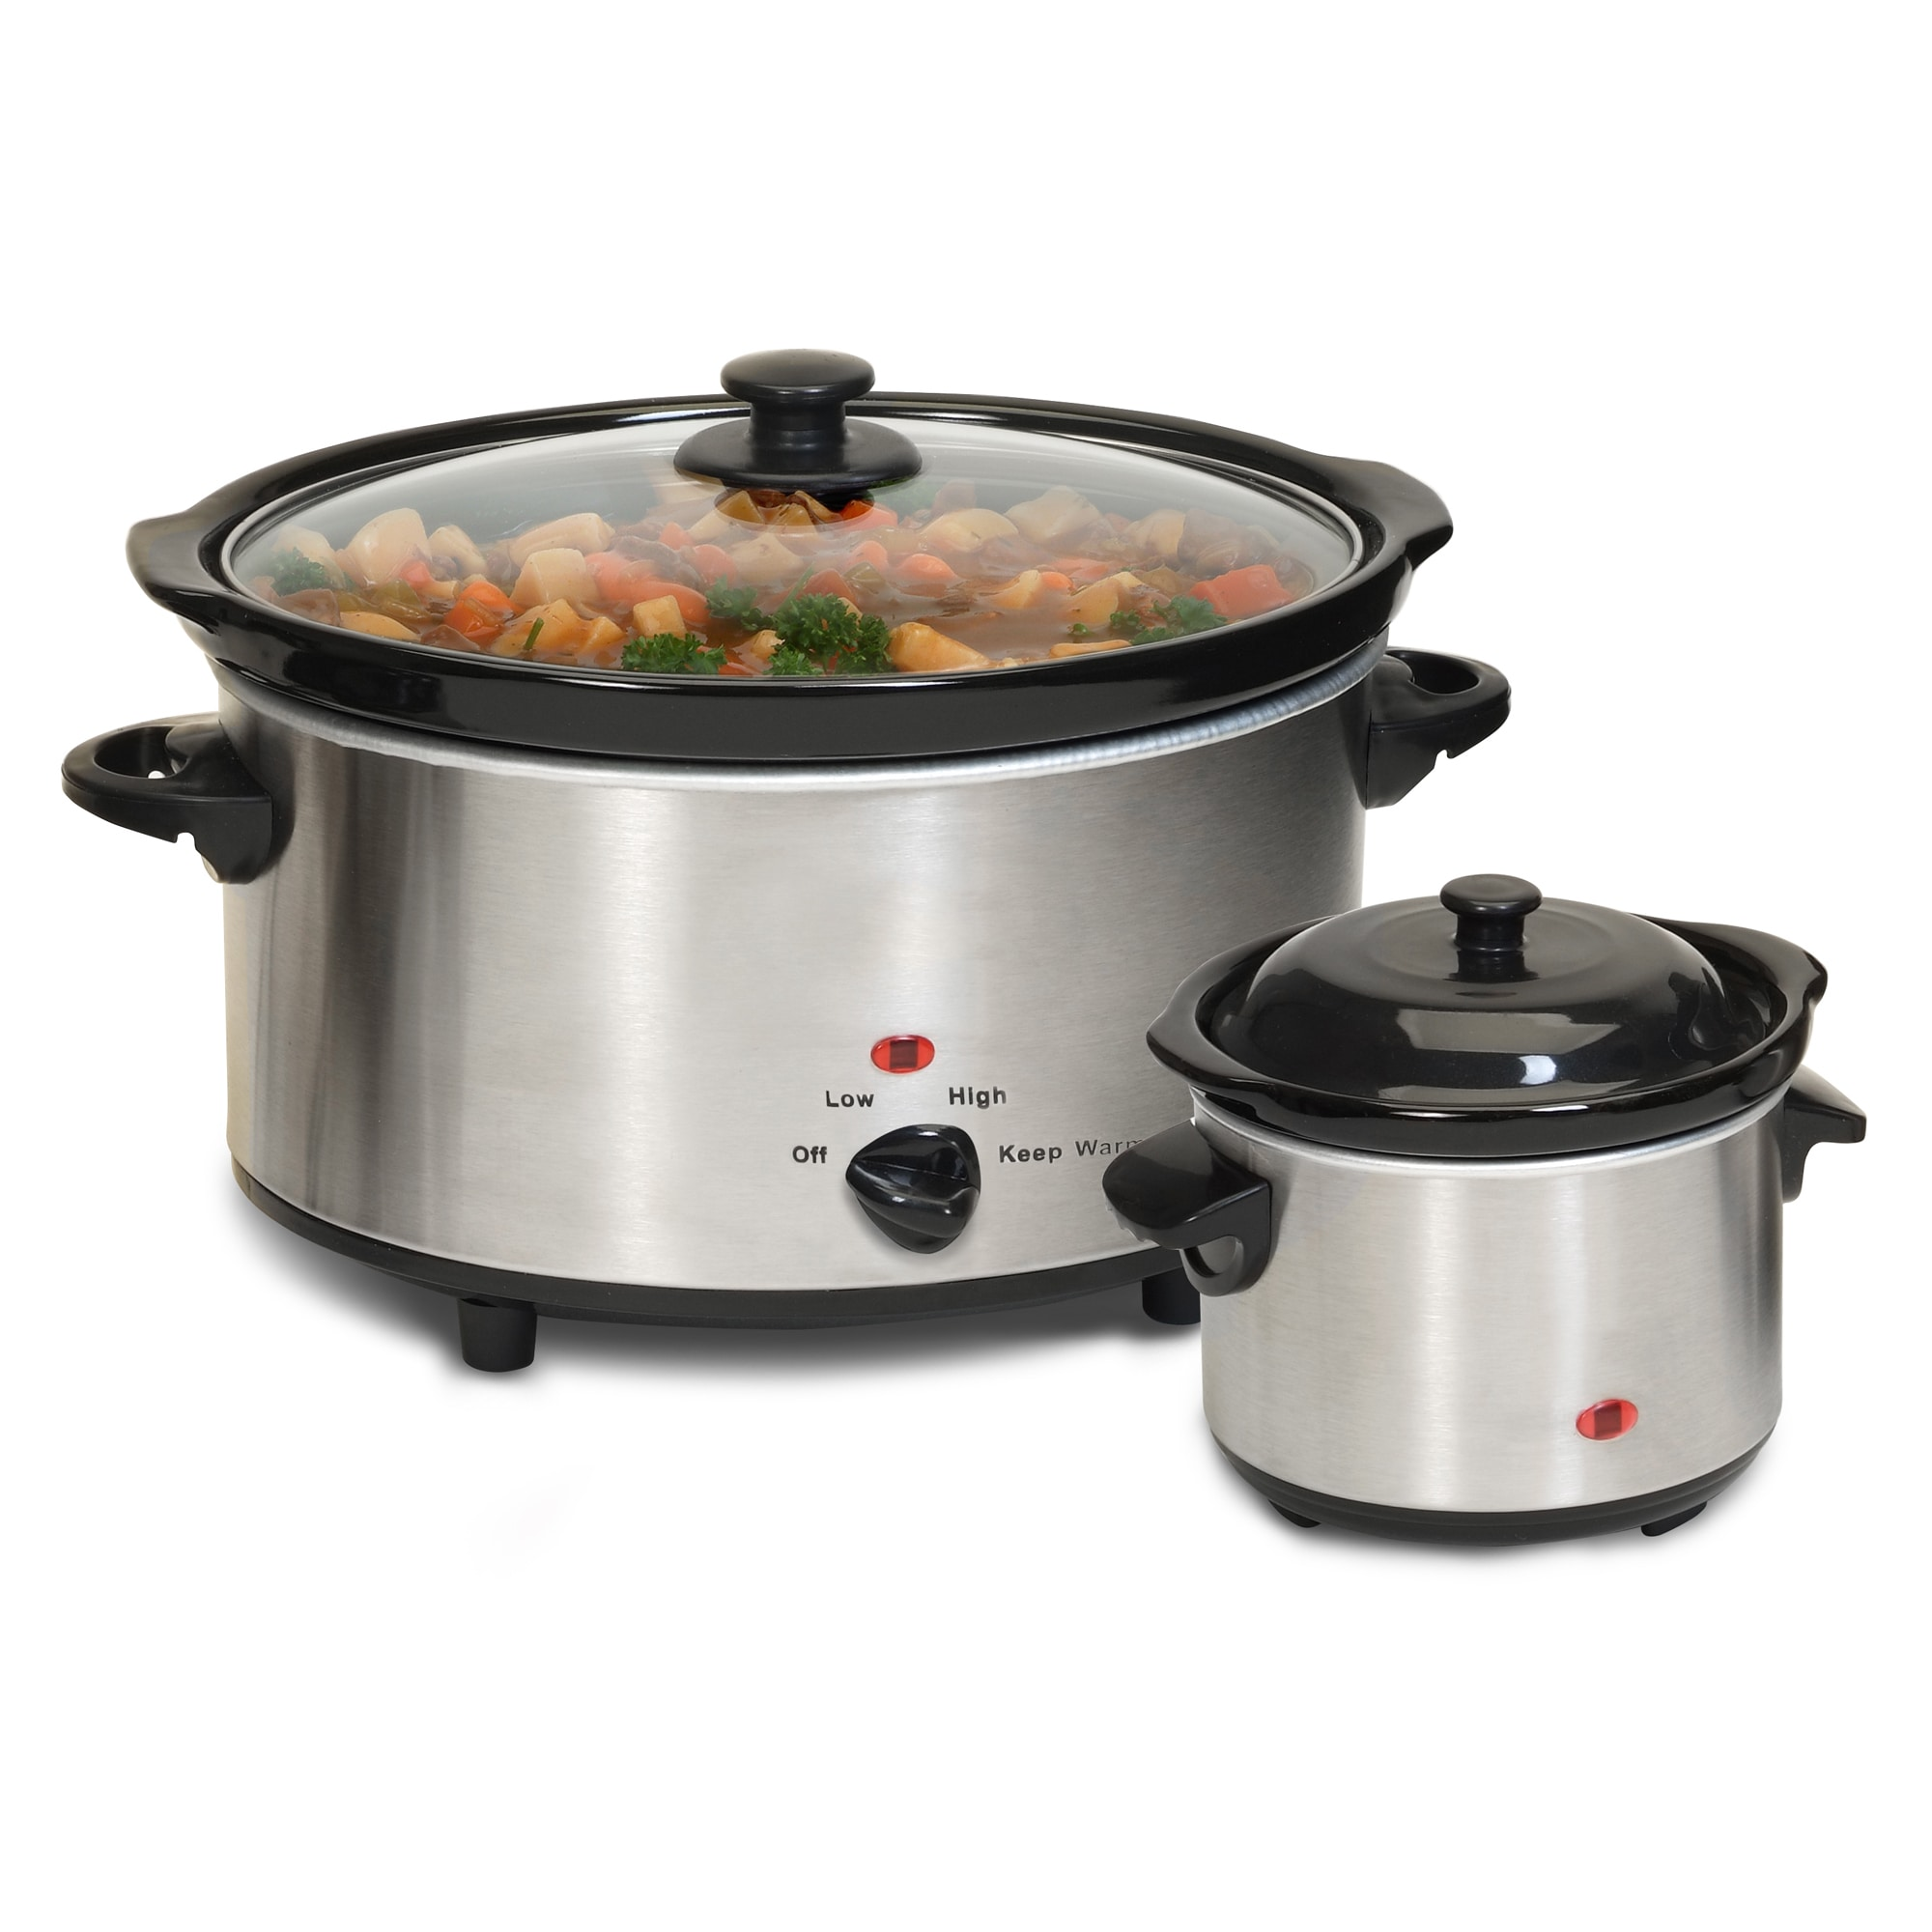 Stainless Steel 2-piece 5-quart Slow Cooker and Dipper Se...